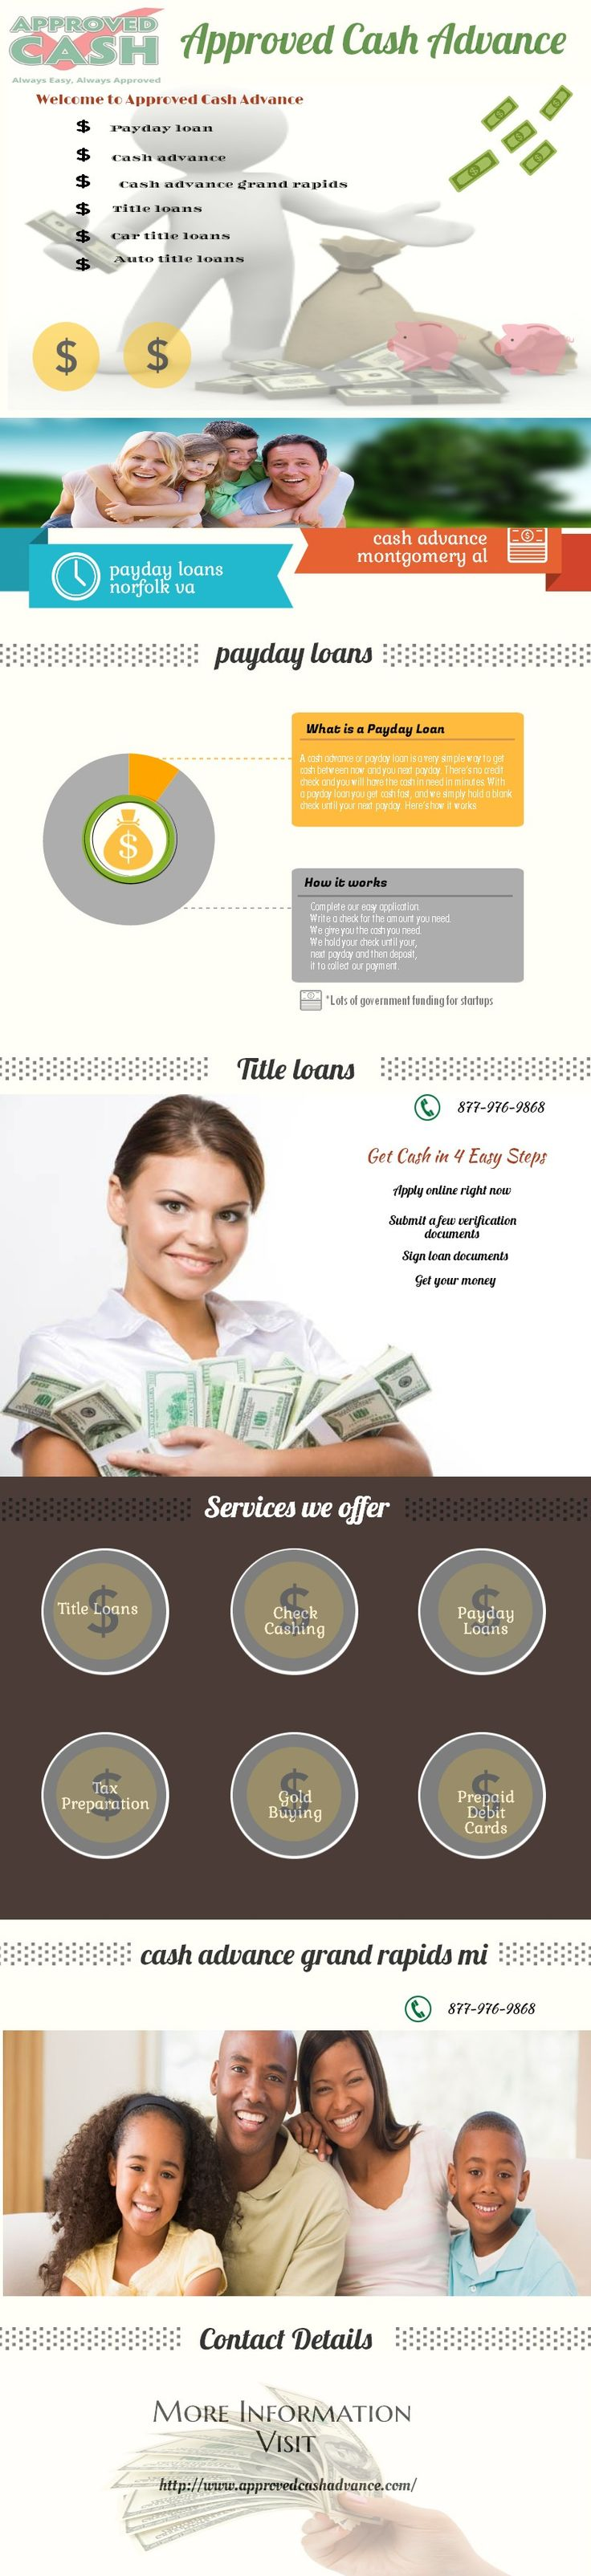 We make loans to customers just like you every day so to get started simply apply online, apply at one of our convenient locations or call 877-976-9868 to get pre-qualified. For a payday loan, all you need to bring is: driver's license, checking account statement, most recent paycheck stub and your personal check. For a title loan, just bring: driver's license, clean & clear car title and your vehicle.